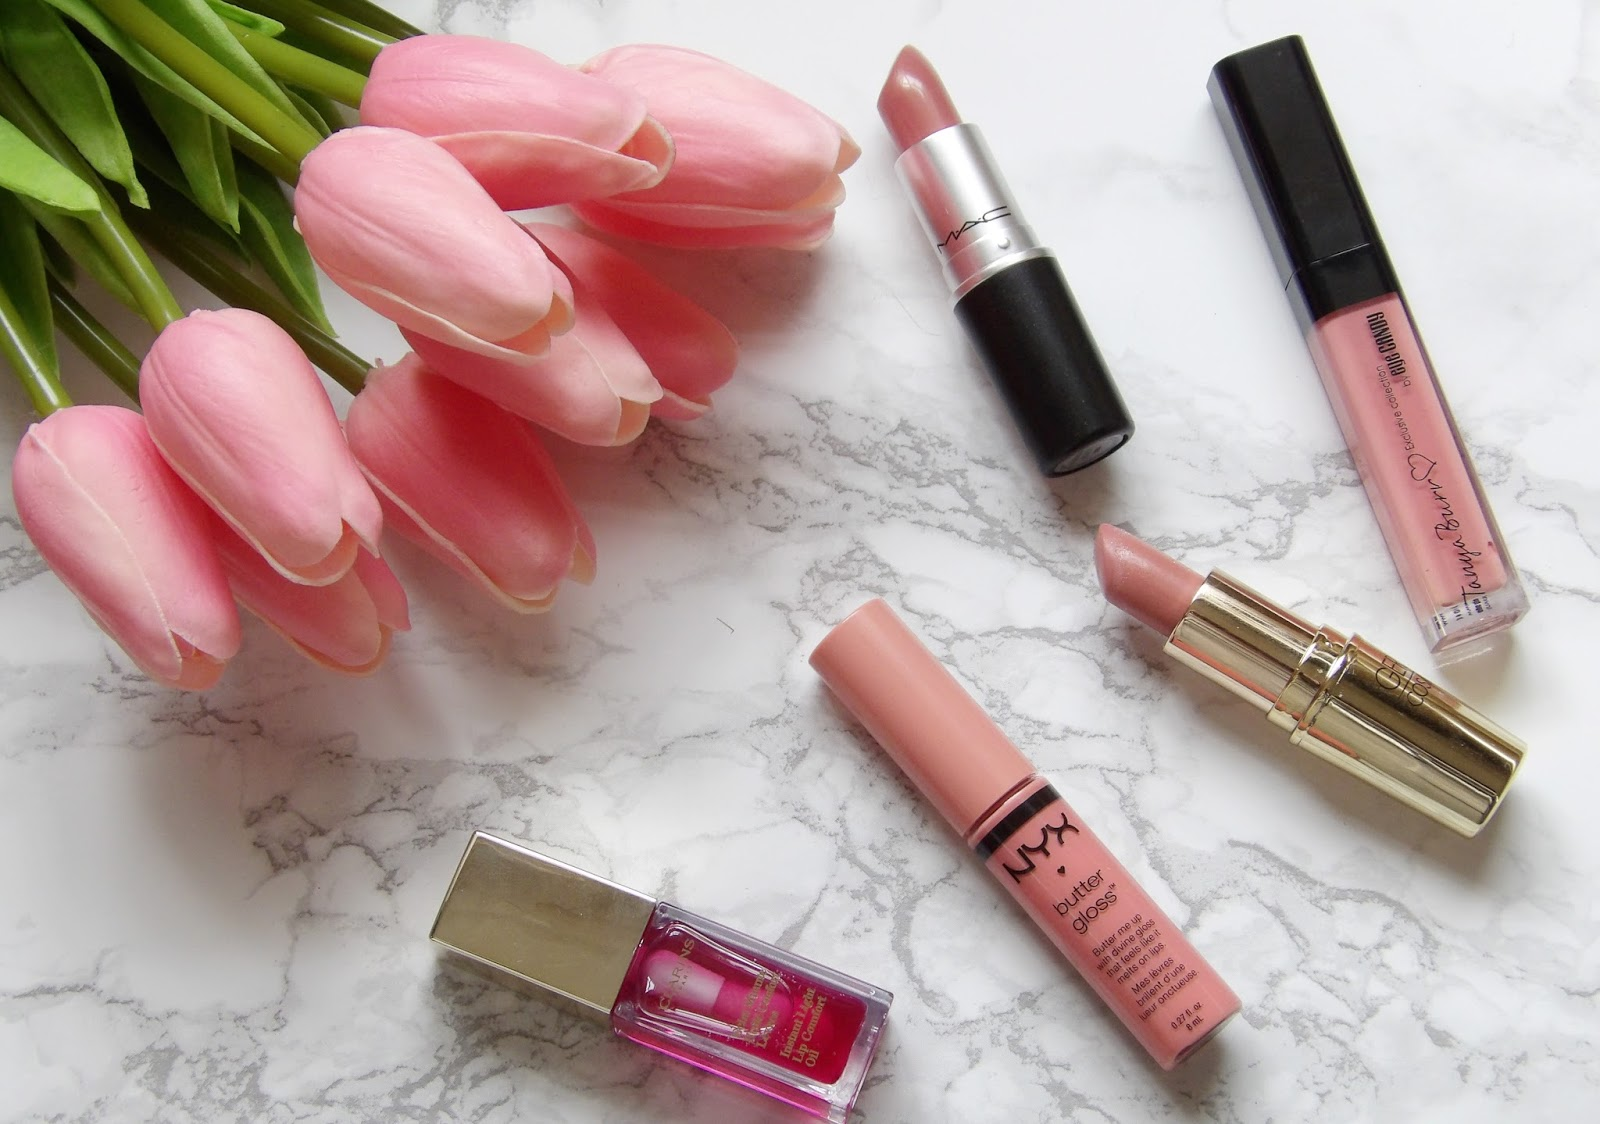 MY TOP 5 LIP PRODUCTS